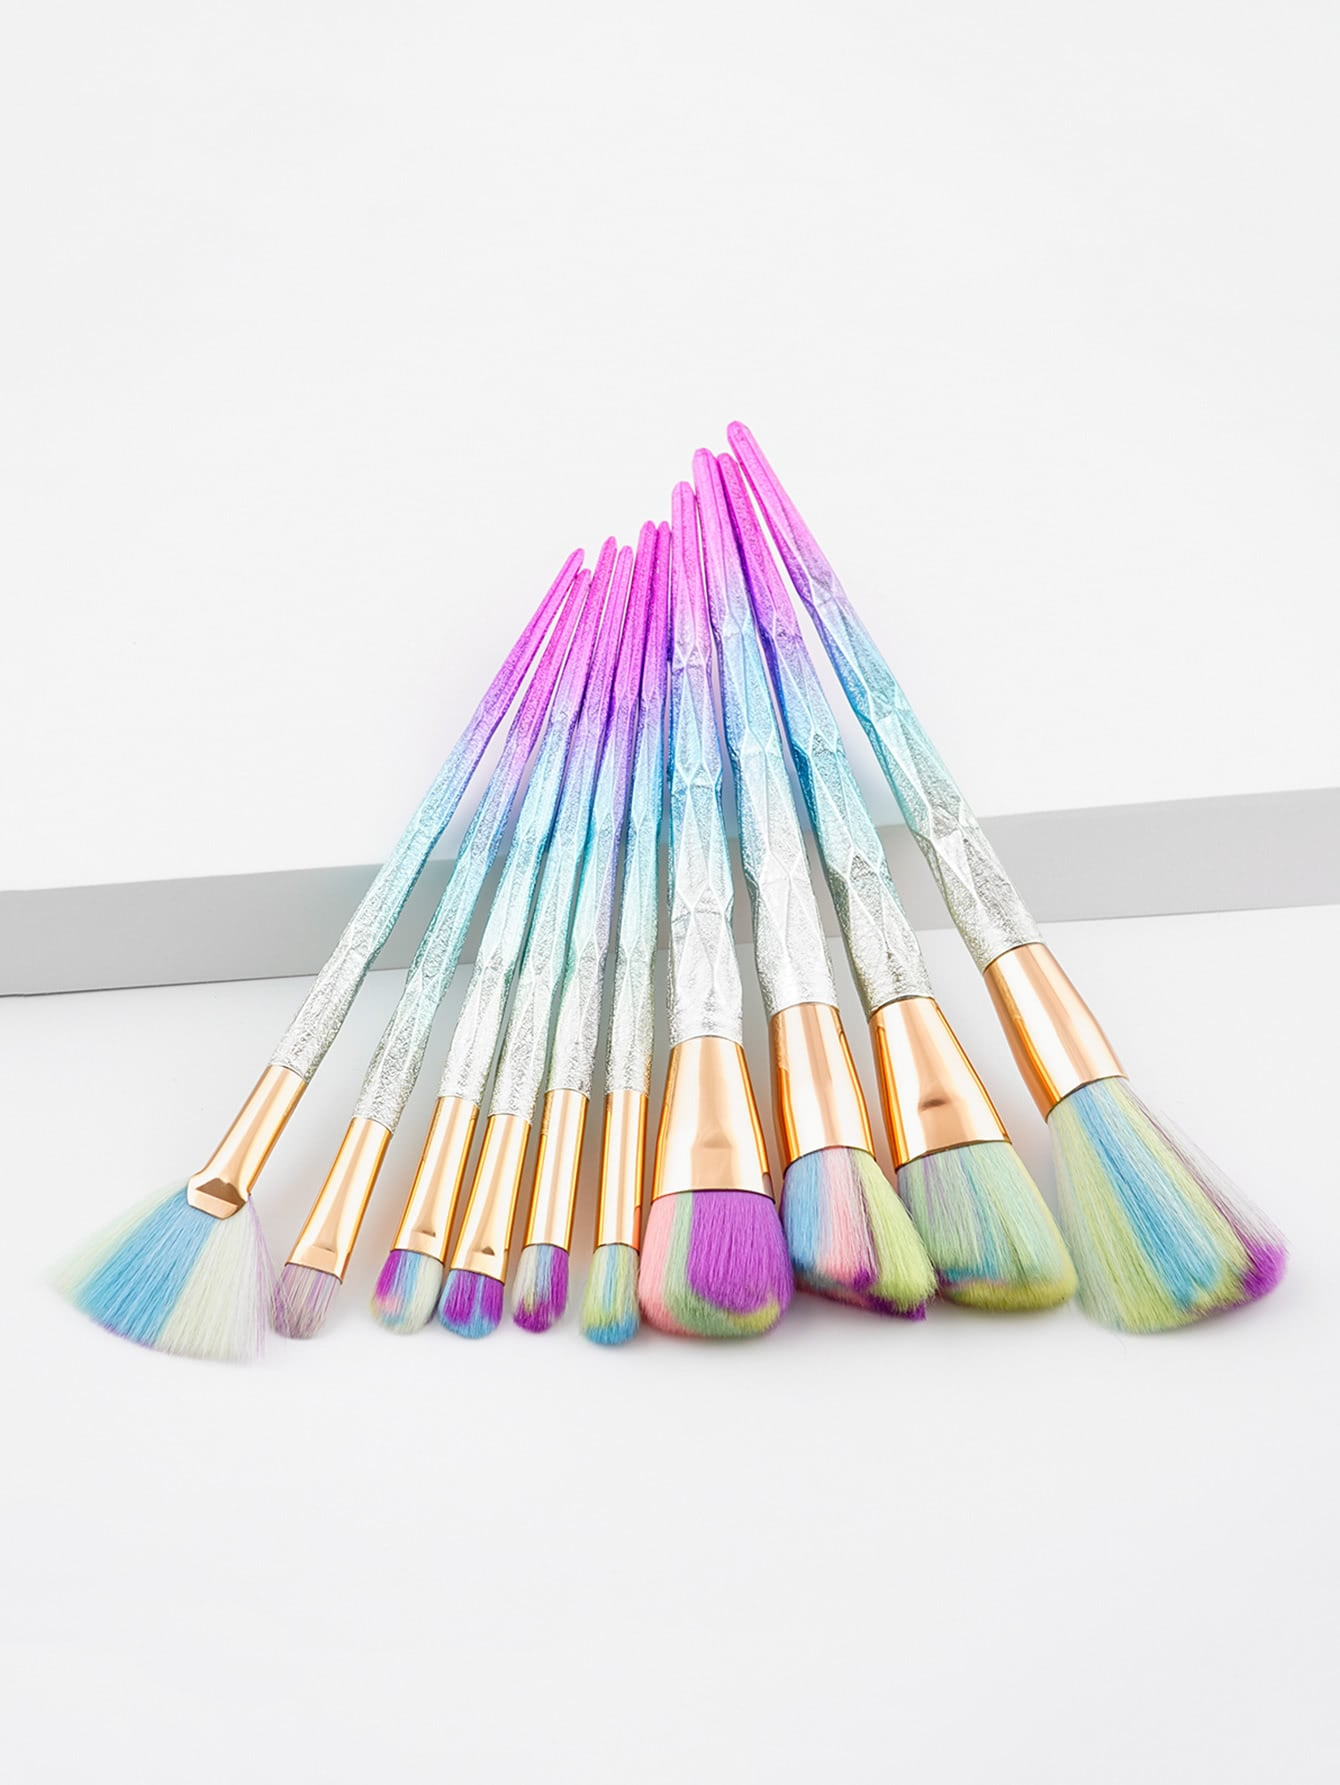 Ombre Diamond Handle Makeup Brush 10pcs ноутбук dell inspiron 5567 5567 3539 5567 3539